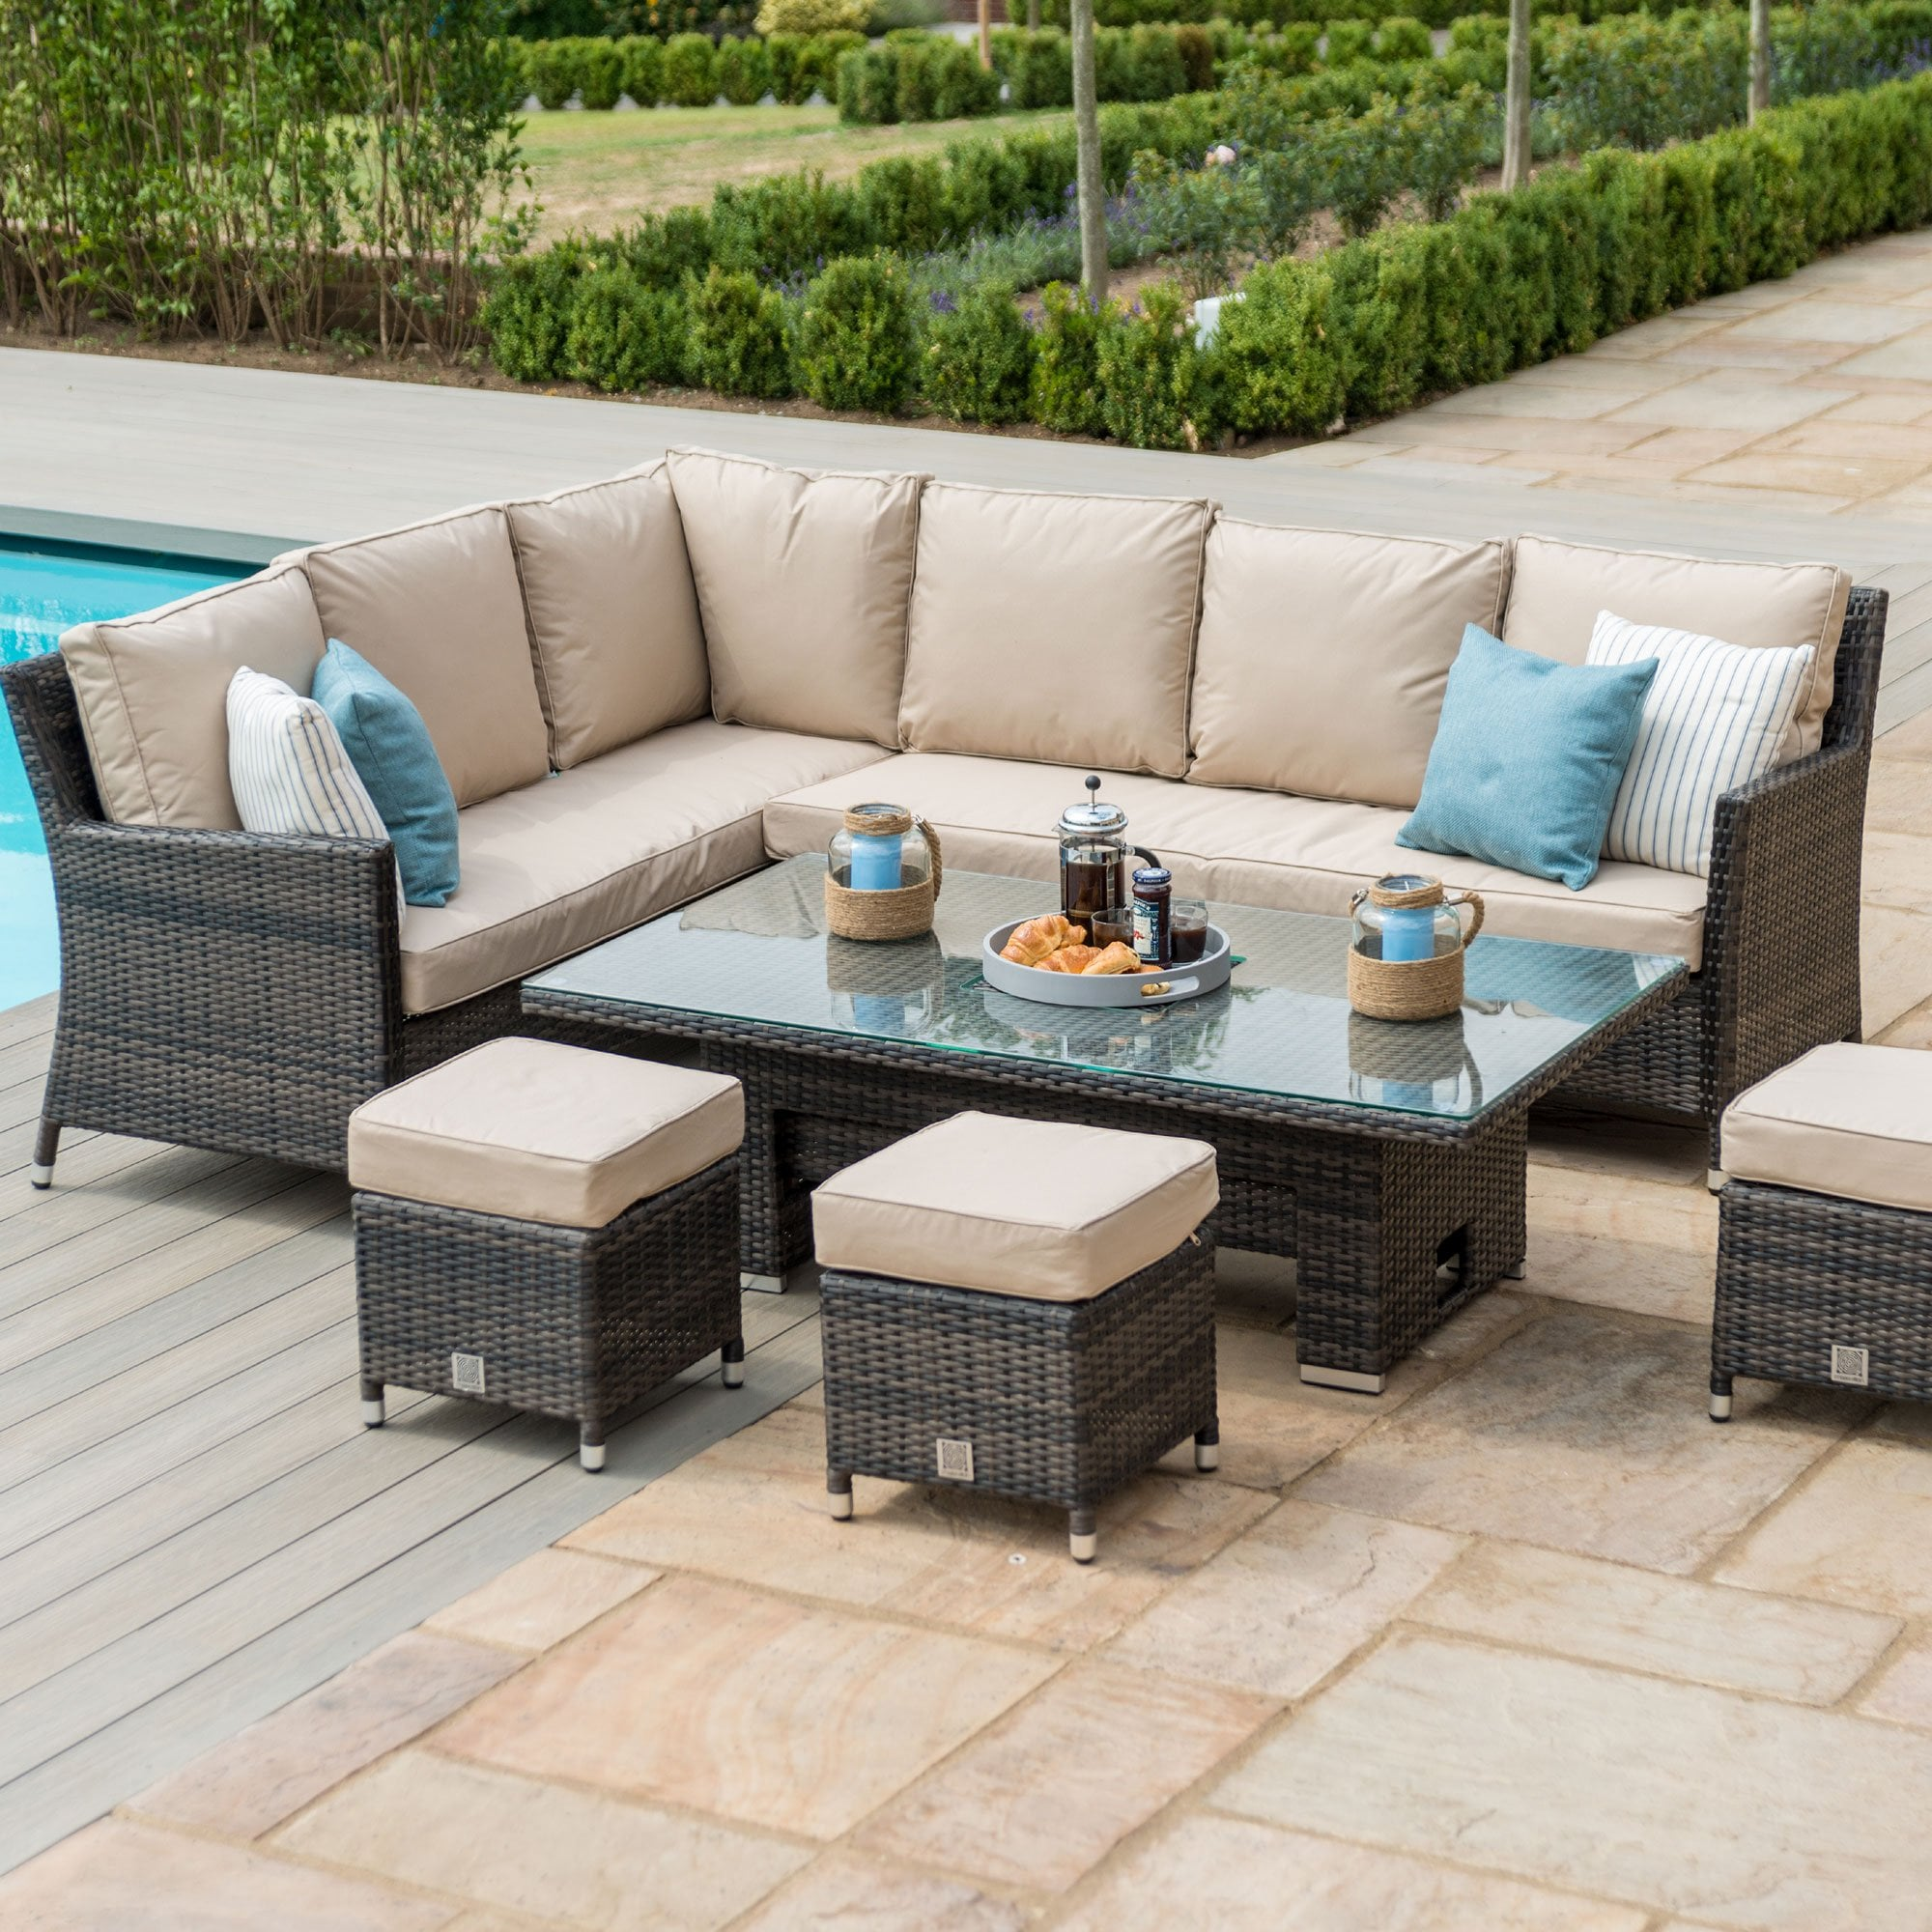 Maze Rattan Venice Corner Sofa Dining Set With Ice Bucket And Rising Table